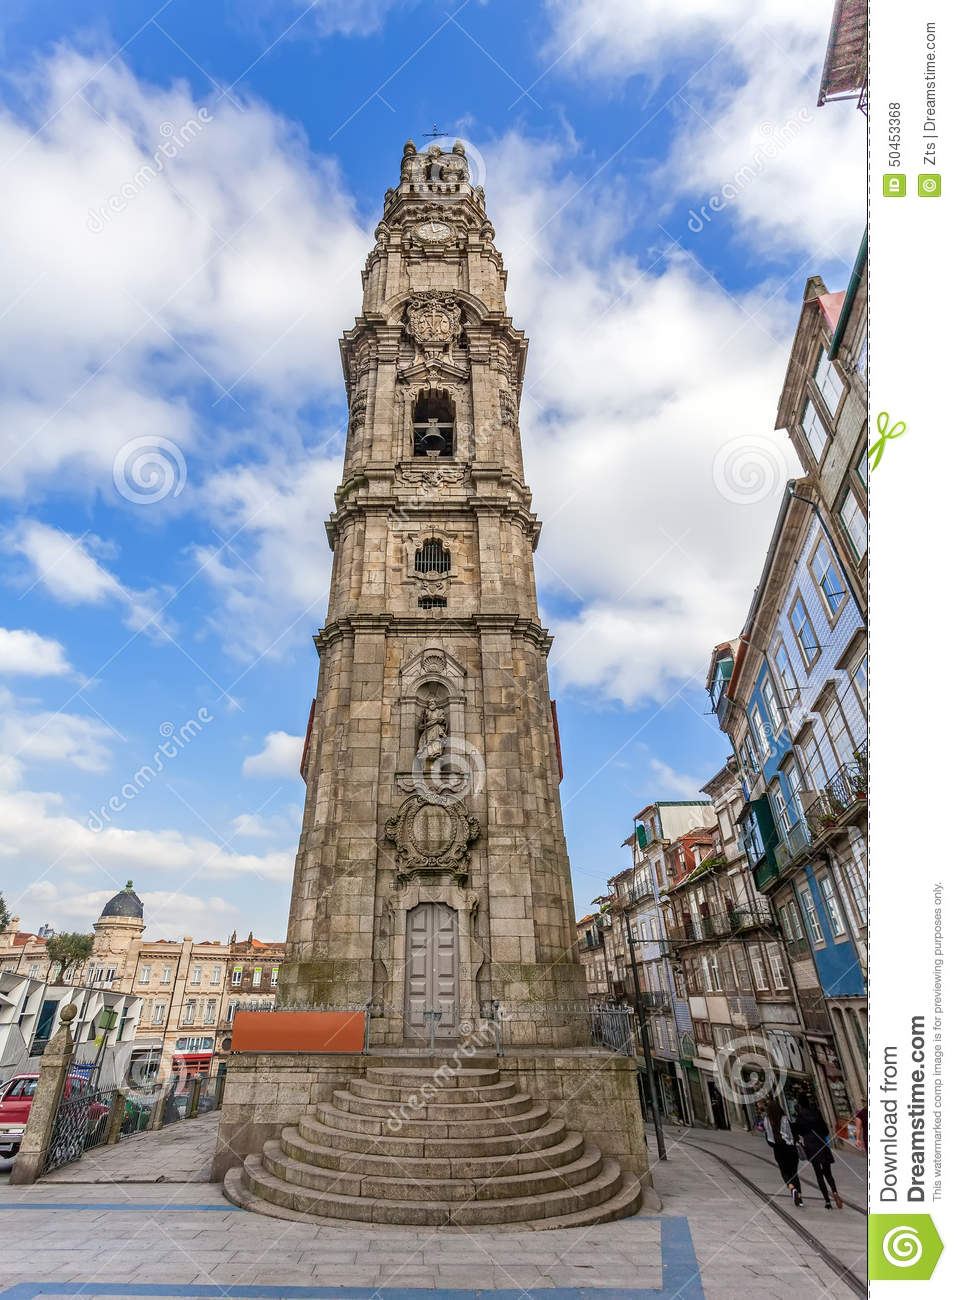 The iconic Clerigos Tower of the city of Porto, Portugal